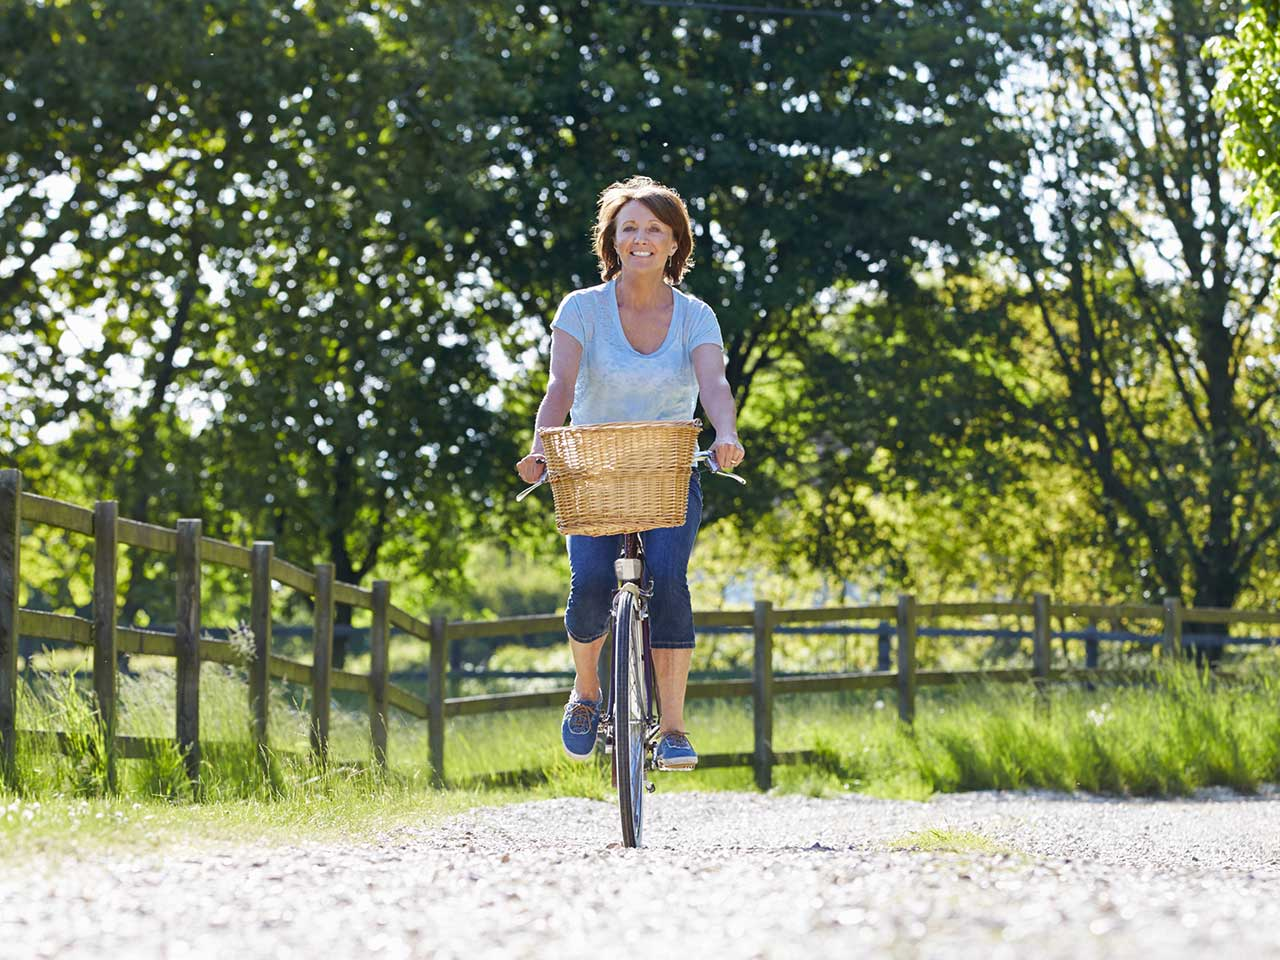 Mature woman riding a bike